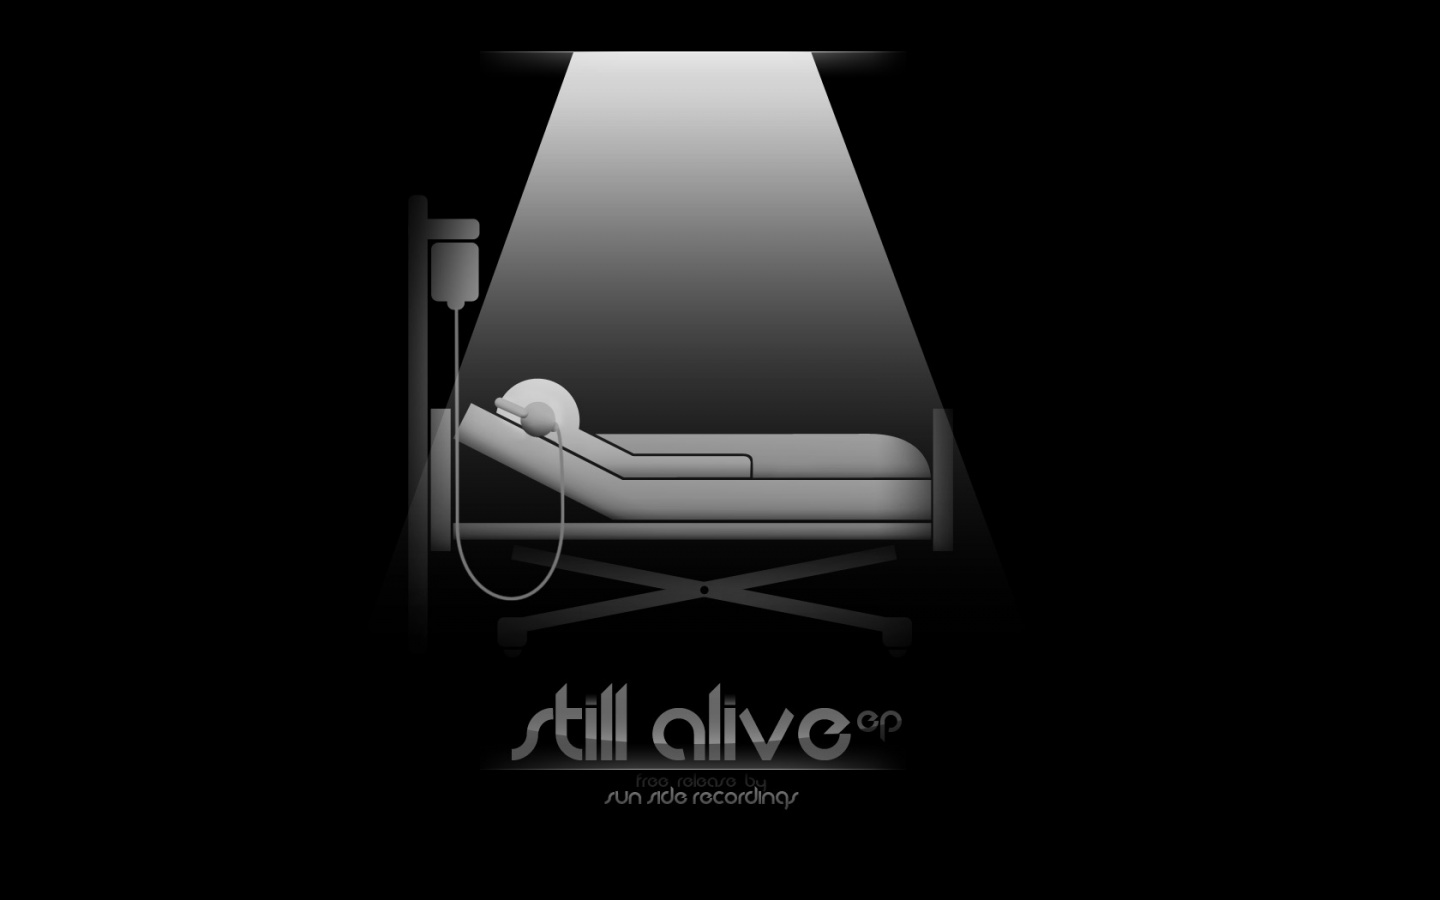 1440x900 Still Alive wallpaper music and dance wallpapers 1440x900